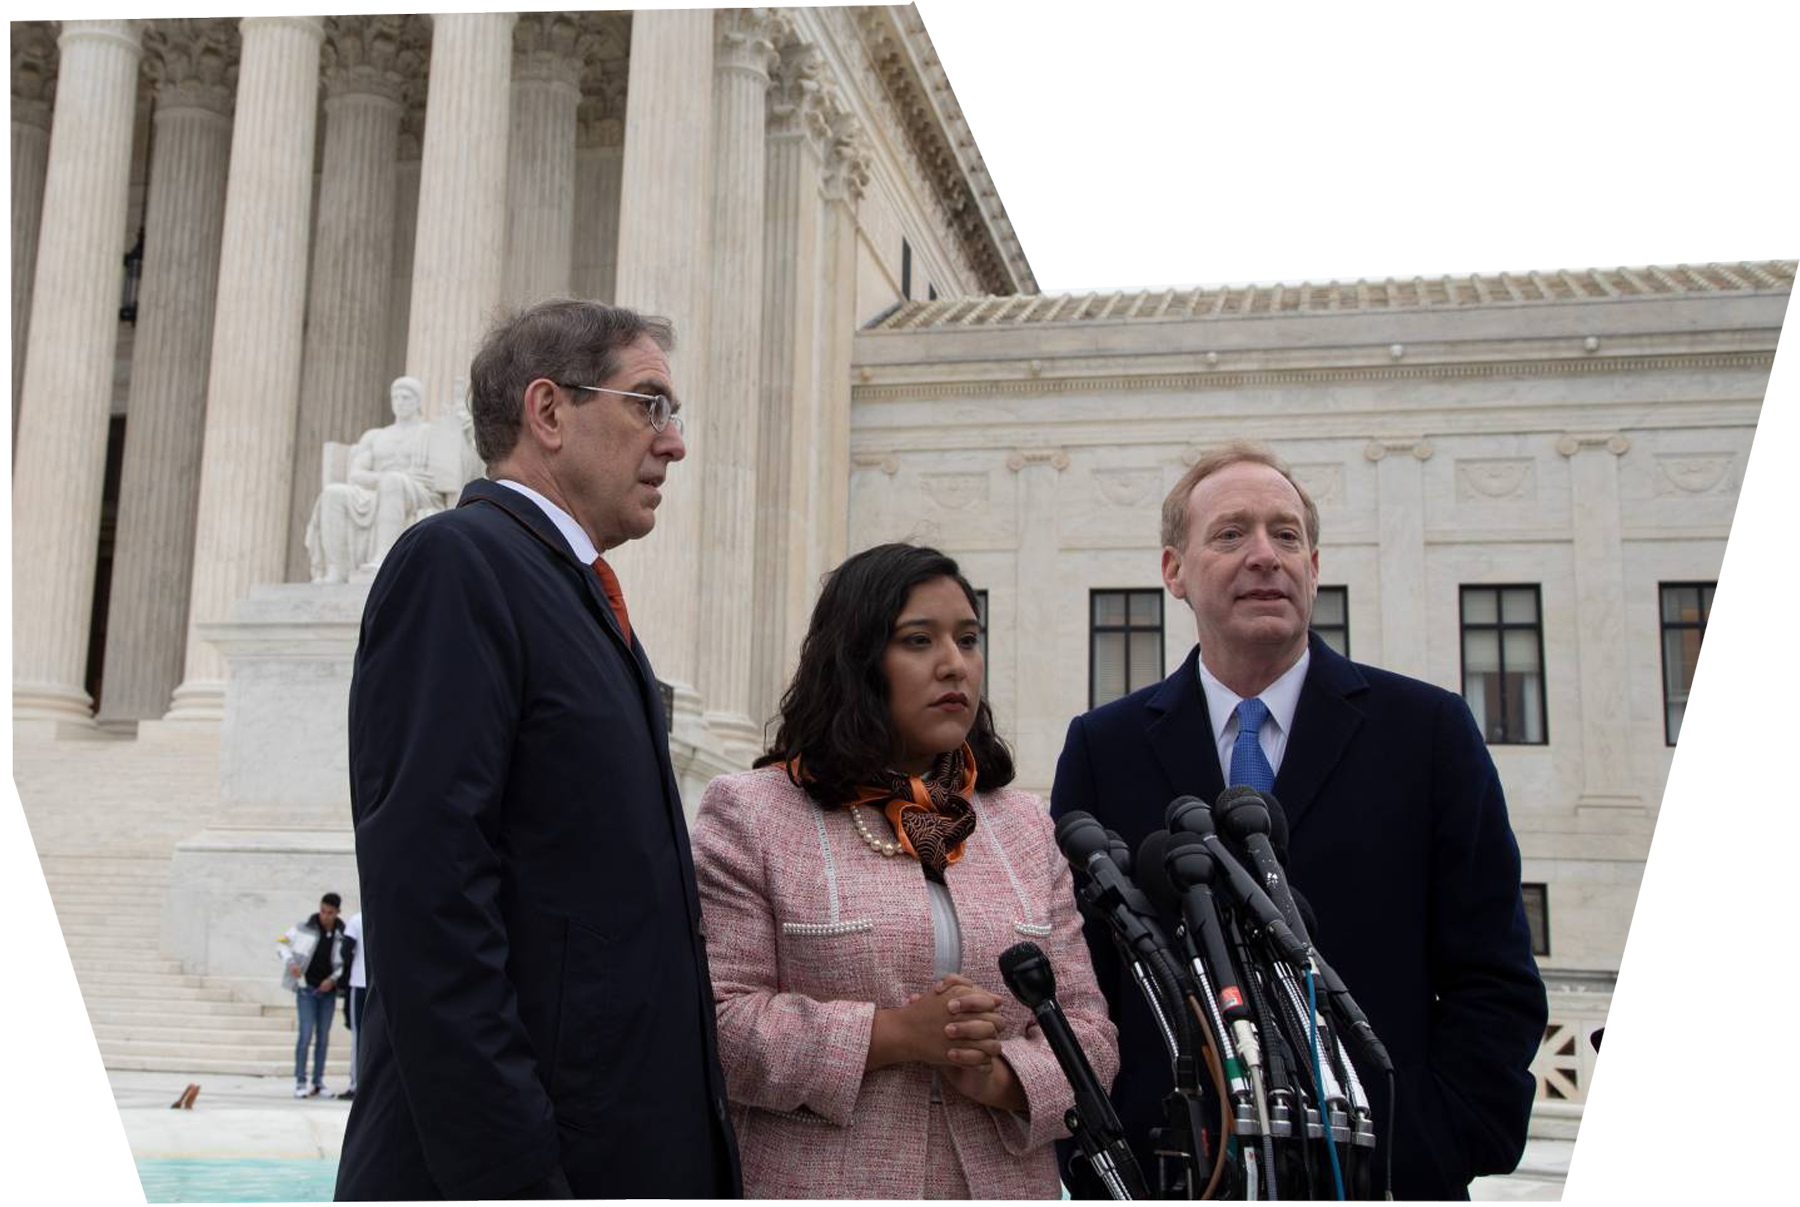 Maria Perales Sanchez '18 standing with University President Christopher Eisgruber and University Trustee Brad Smith in front of the Supreme Court after a DACA case in 2019.